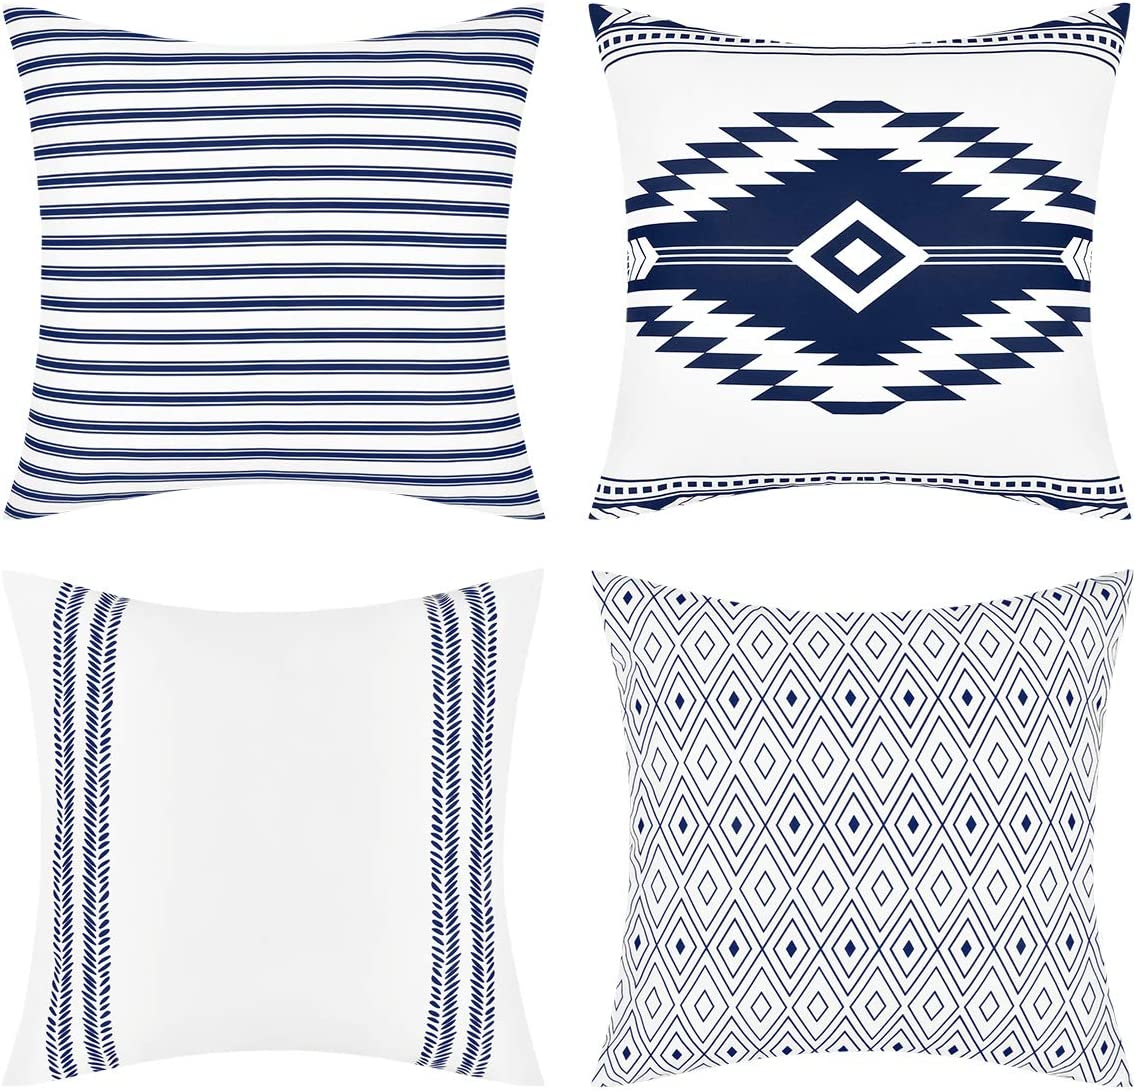 Yastouay Modern Decorative Throw Pillow Covers Boho Throw Pillow Covers Aztec Pillow Covers Geometric Cushion Cover for Home Decor Sofa Couch Bed, Blue